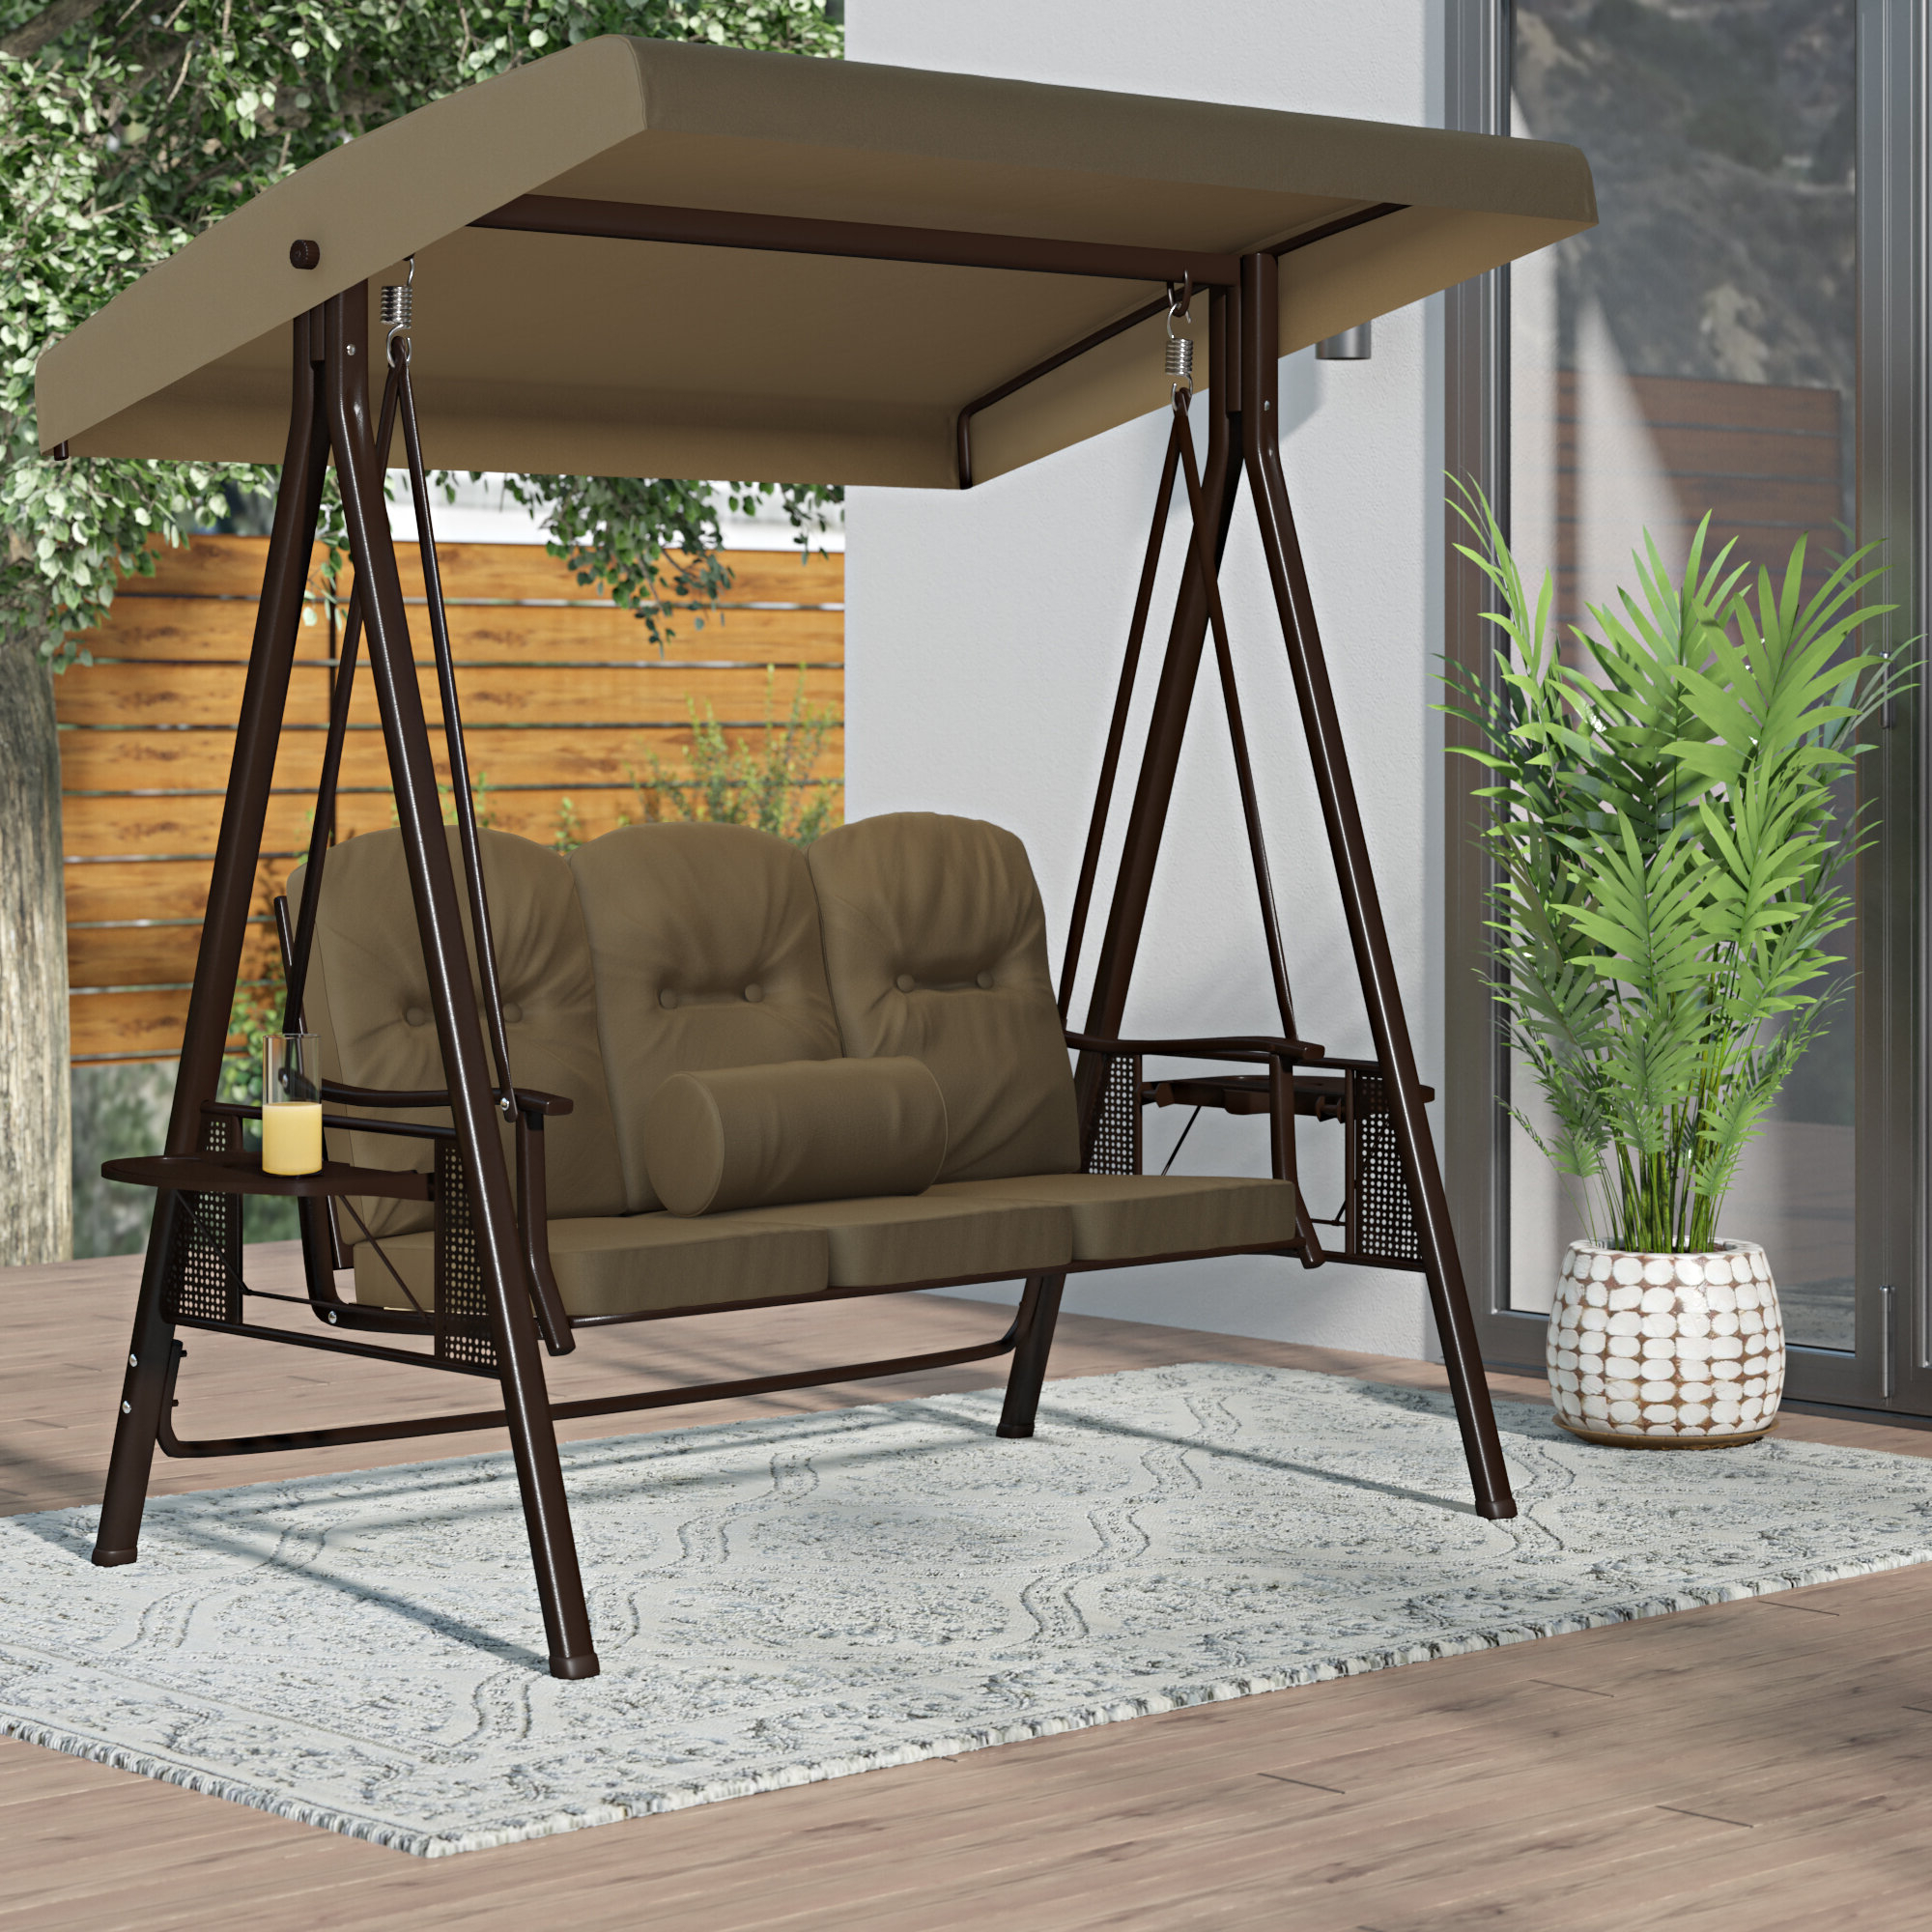 Folkston Outdoor Canopy Porch Swing With Stand Within Latest Porch Swings With Stand (View 29 of 30)